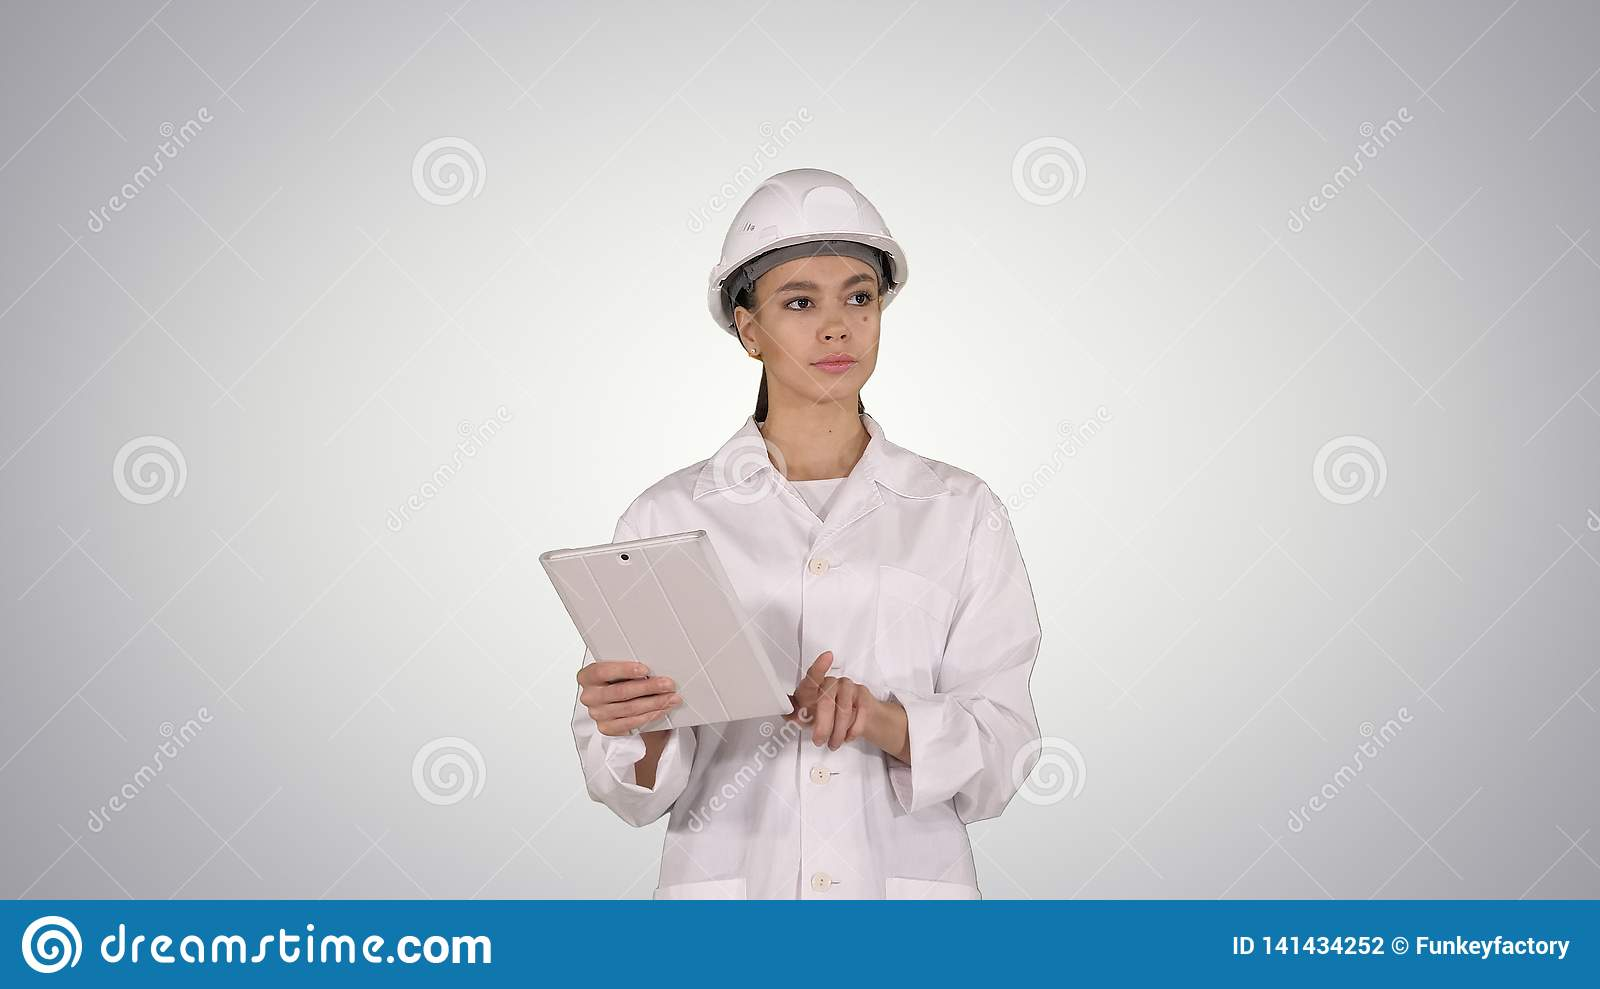 Woman engineer checking information and objects on her tablet on gradient background.